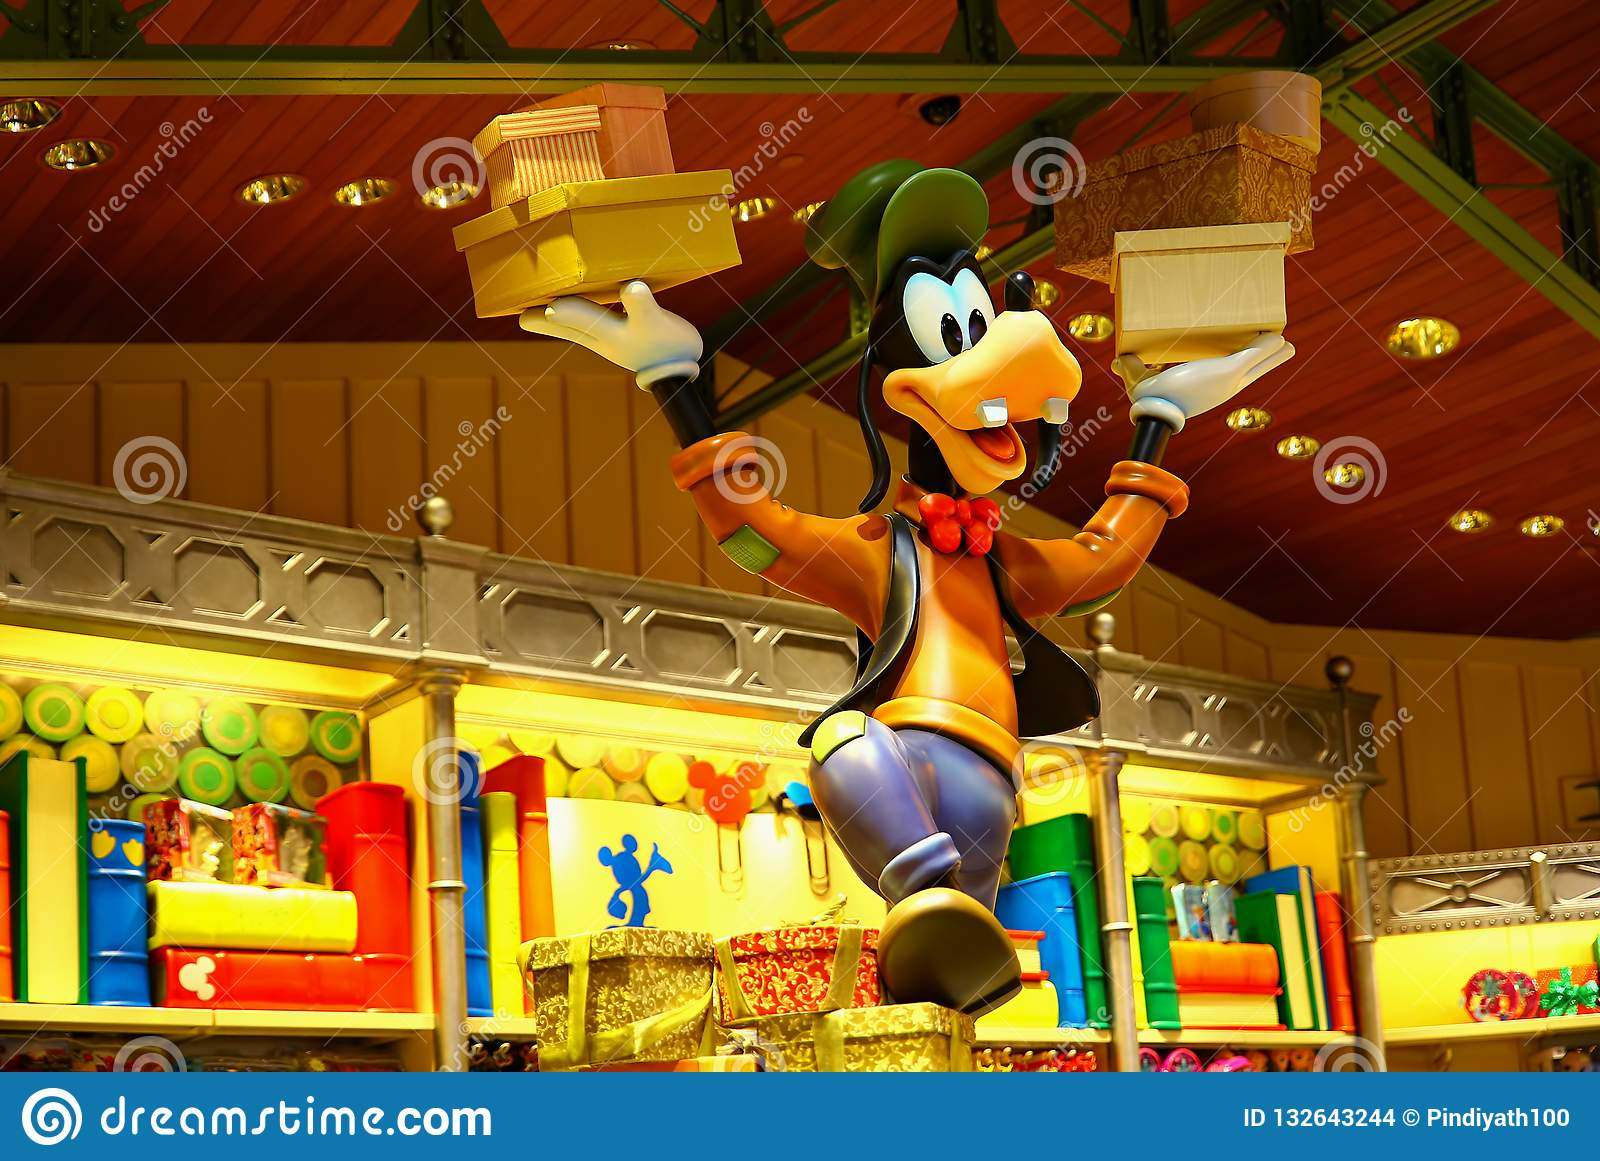 Walt Disney Goofy Character Editorial Stock Image Image Of Character Commercial 132643244